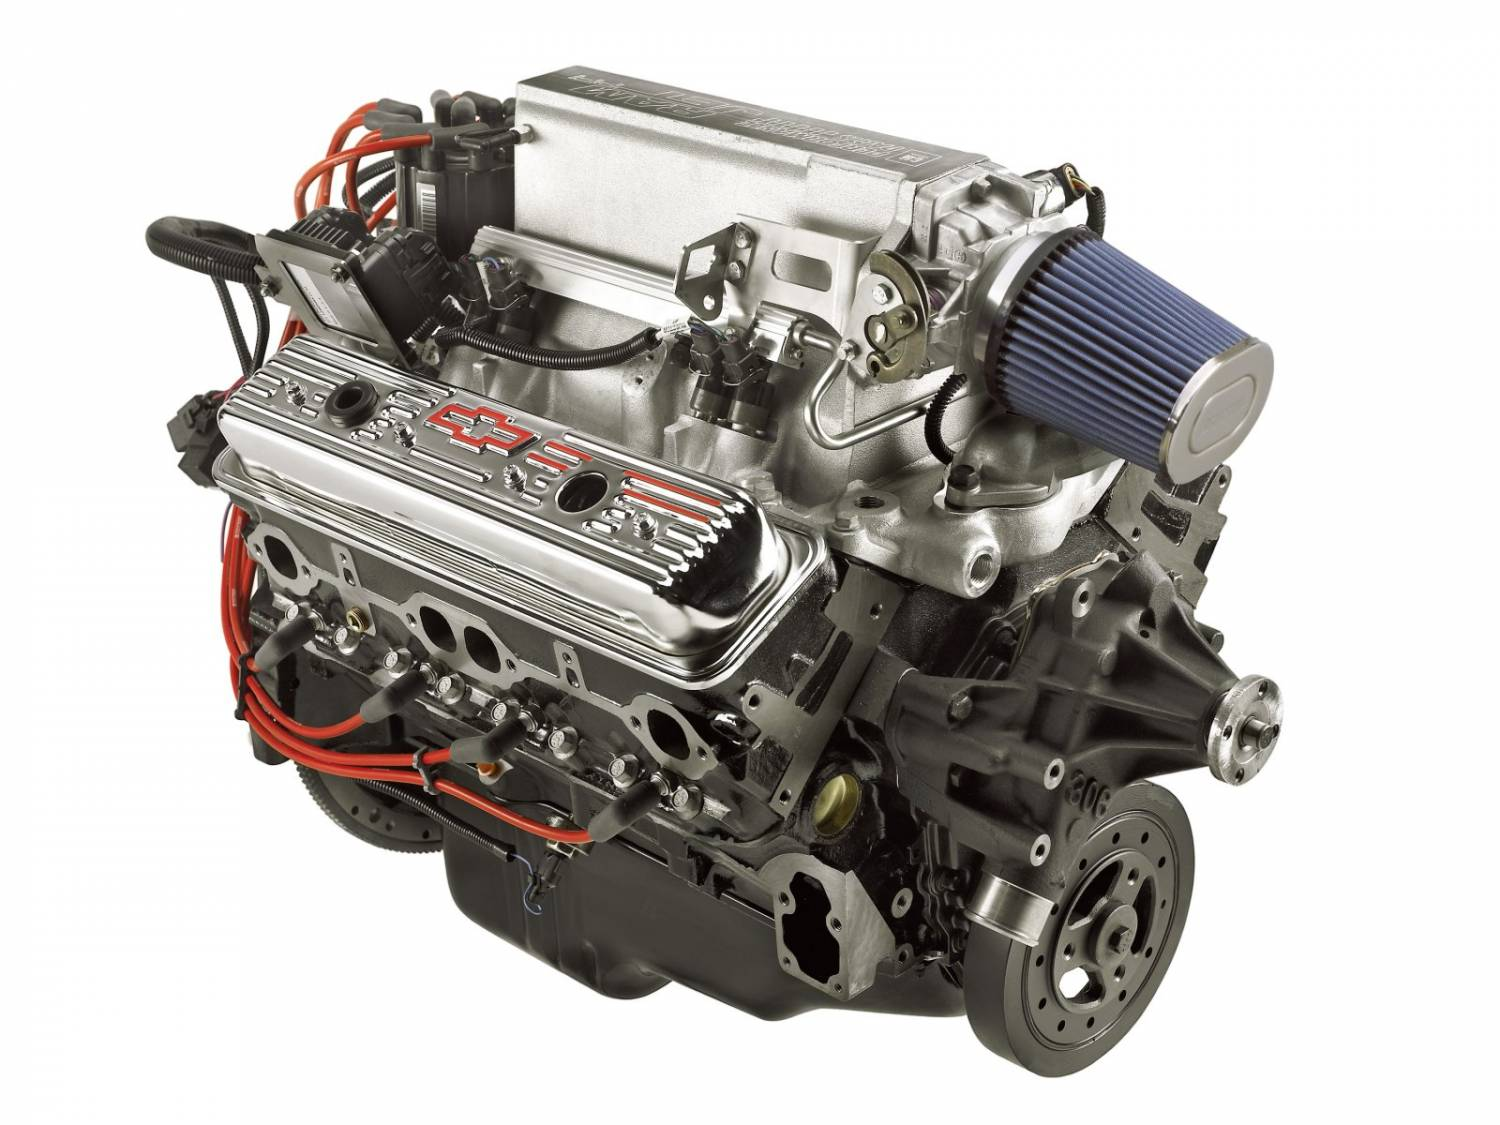 Pace Performance Gmp T56rj350 Cpp Ram Jet 350cid Engine With T56 Wiring Harness 6 Speed